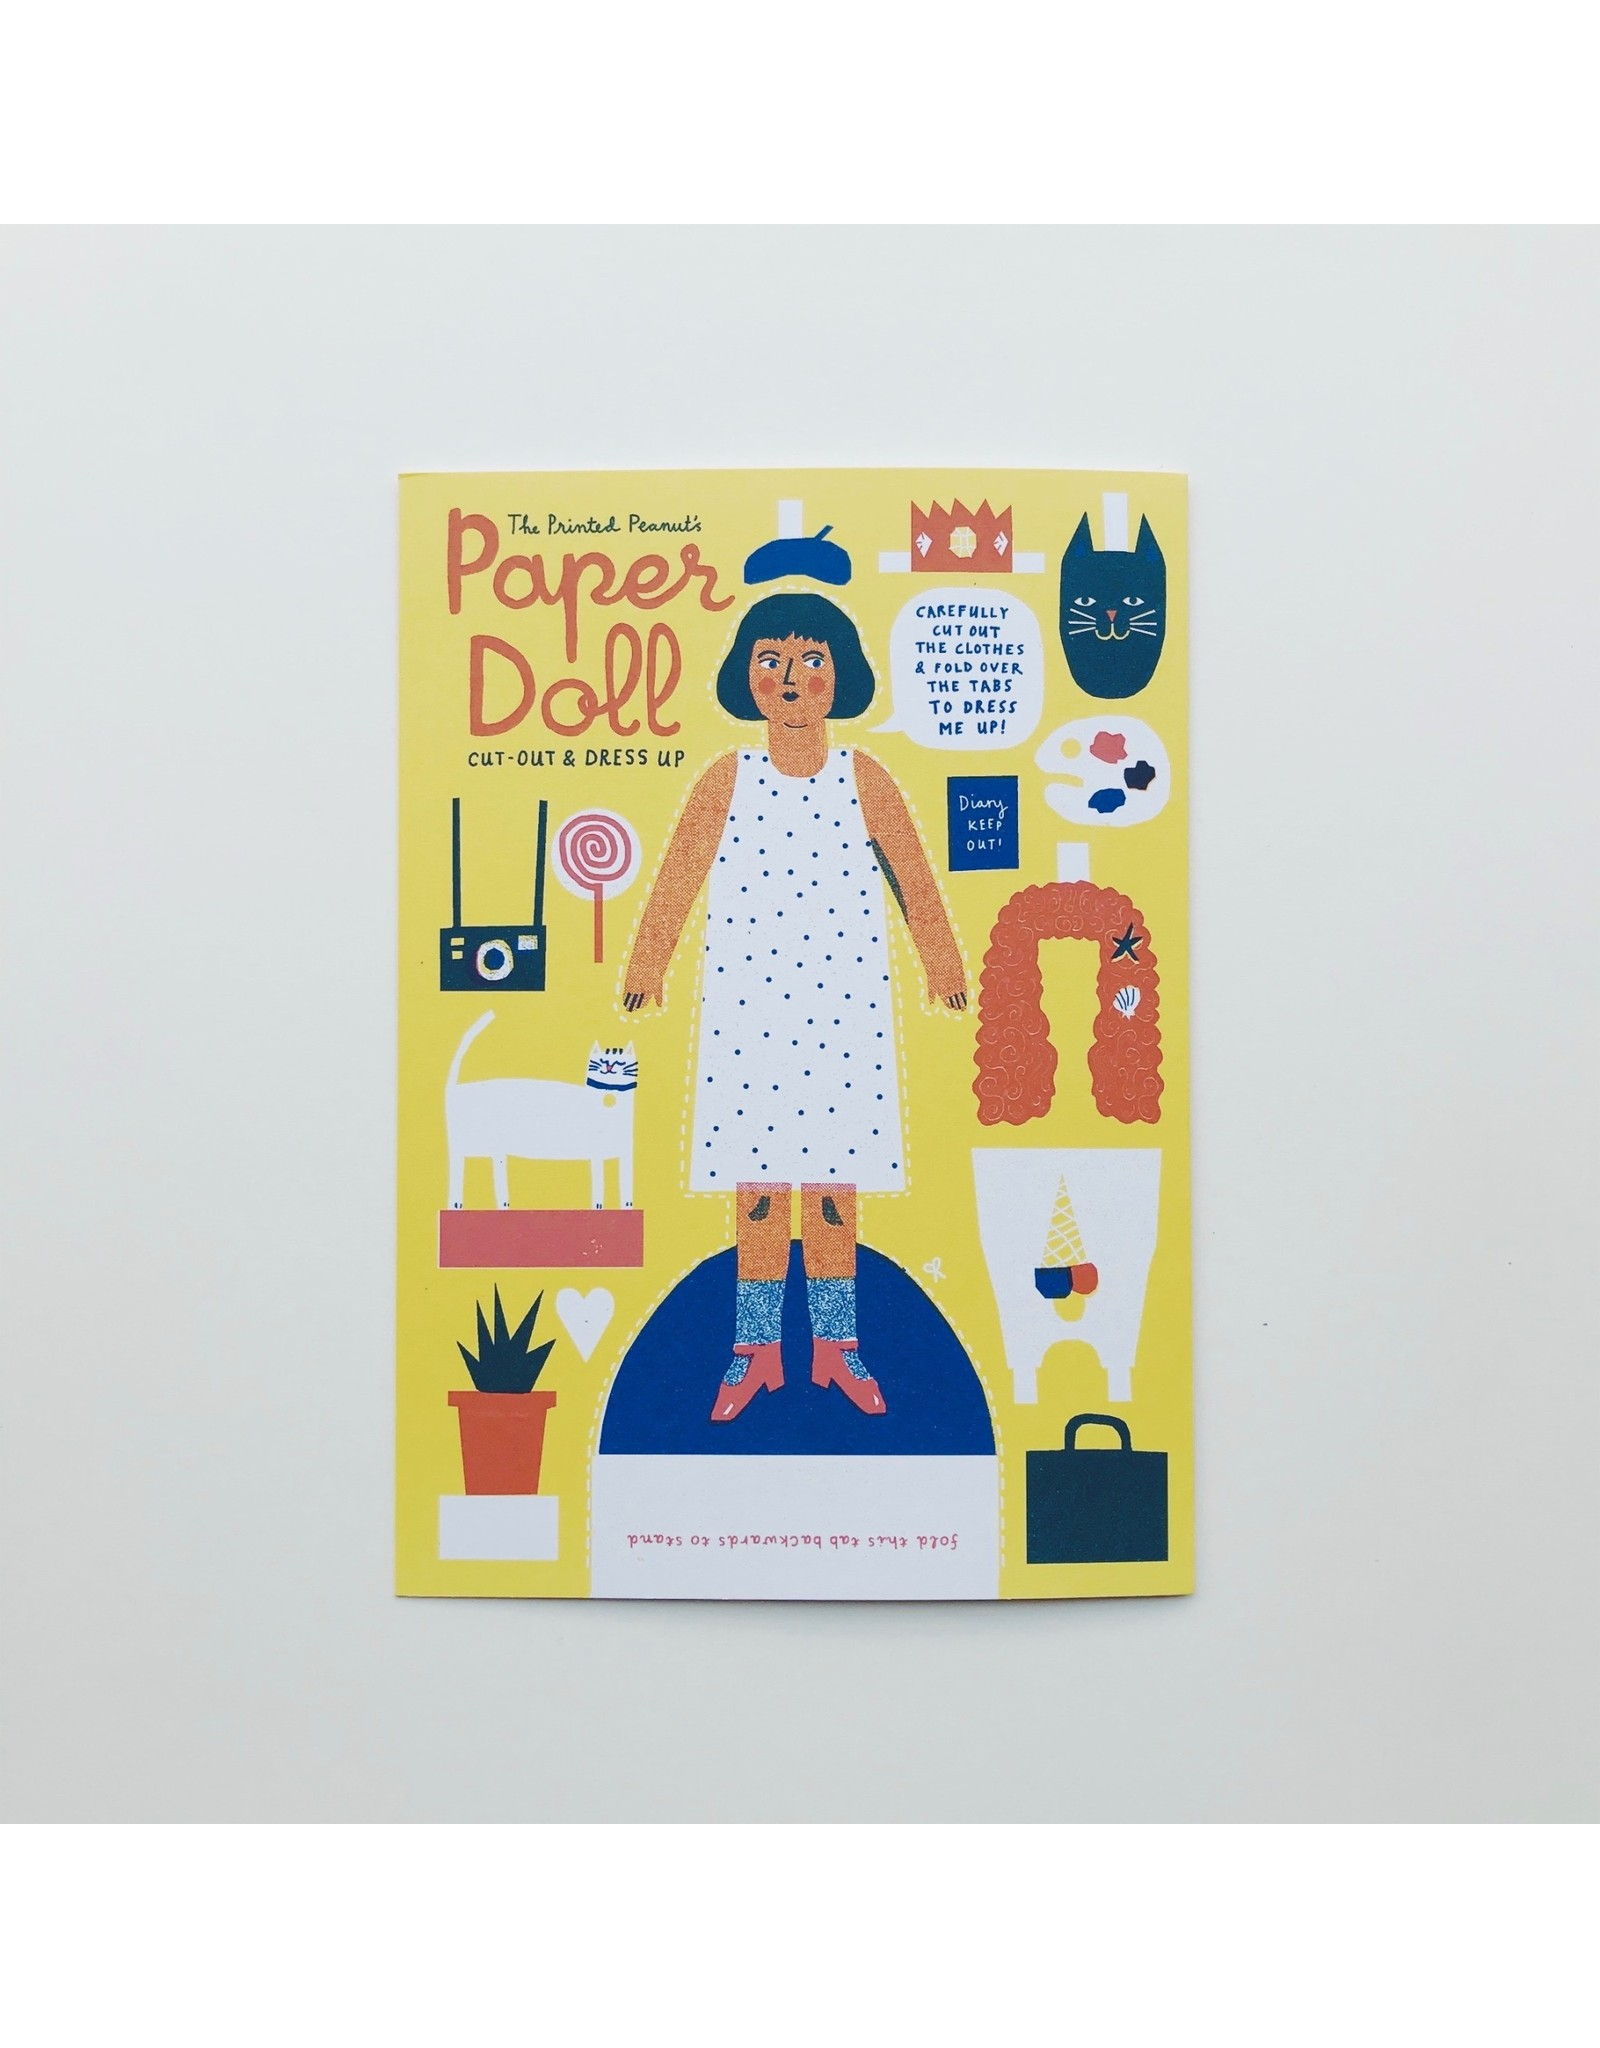 Cut Out & Dress Up Paper Doll